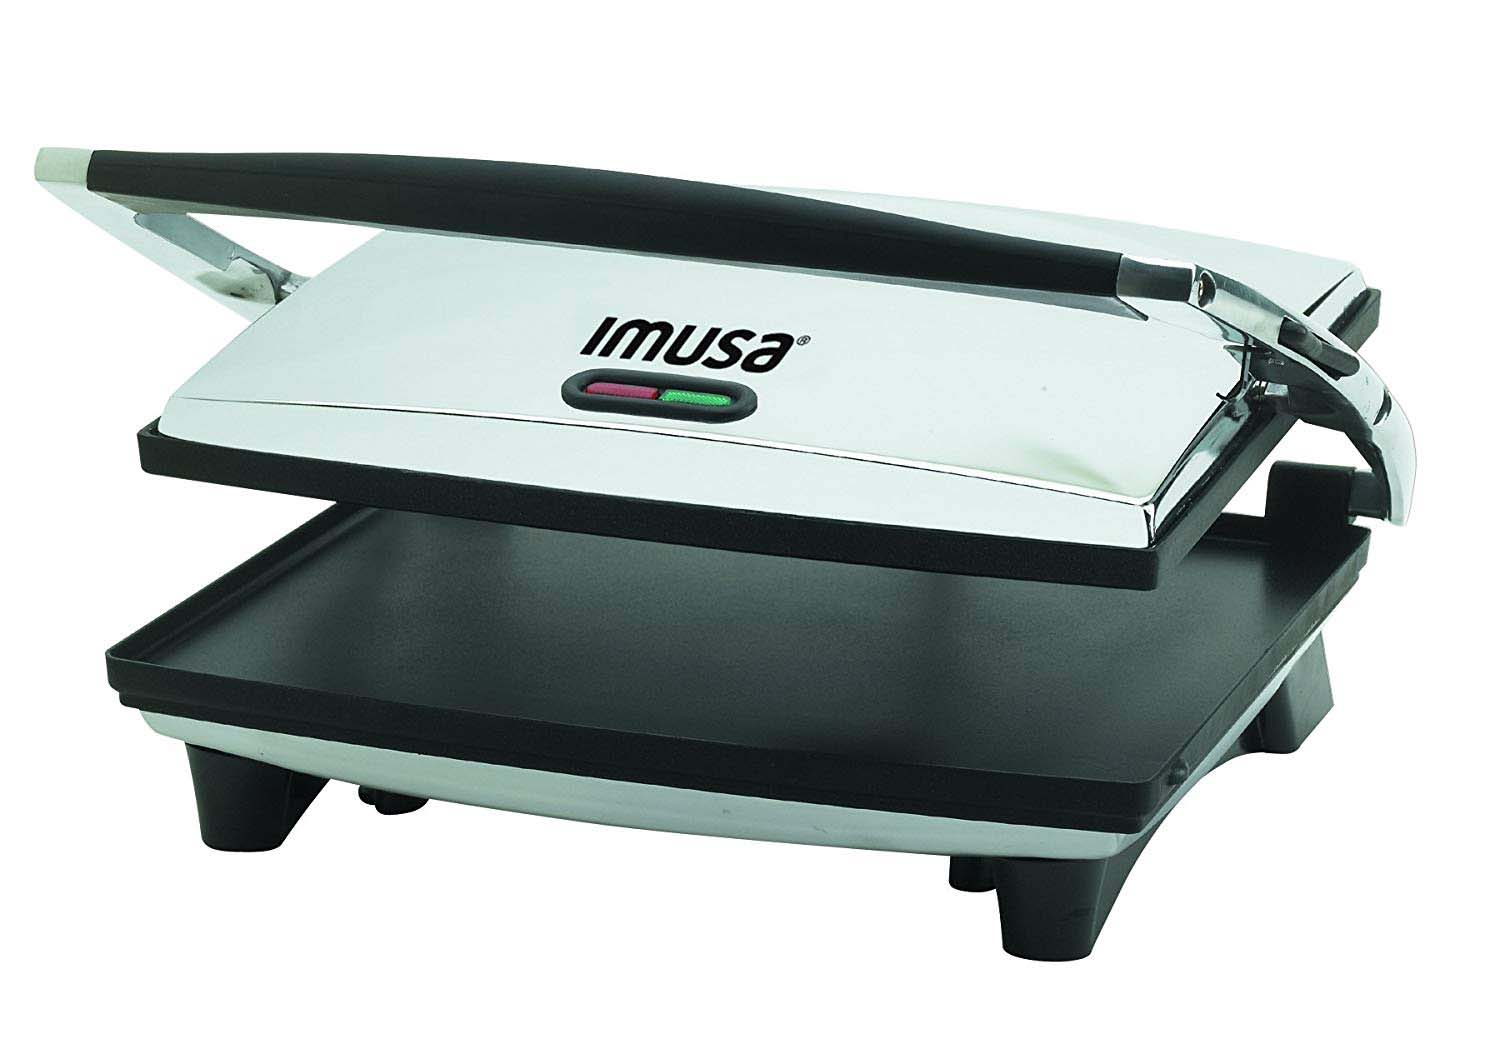 IMUSA USA GAU-80102 Large Electric Panini Press 1400-Watts